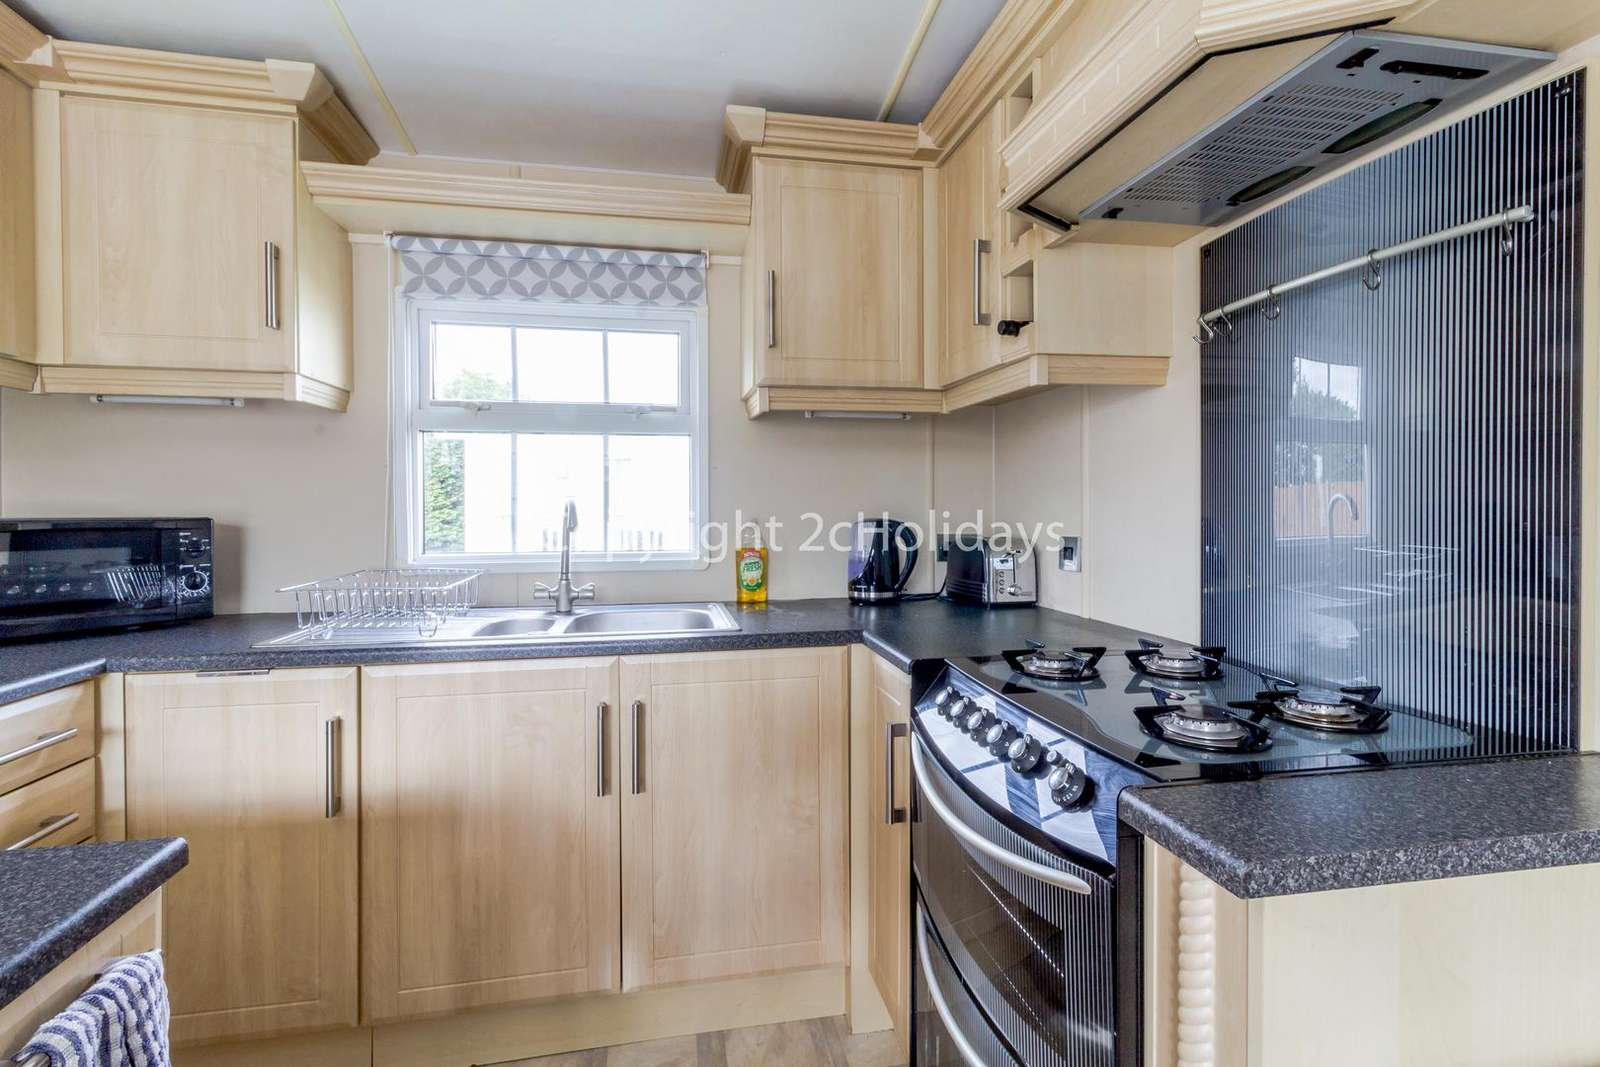 This kitchen includes a full size oven/hob!